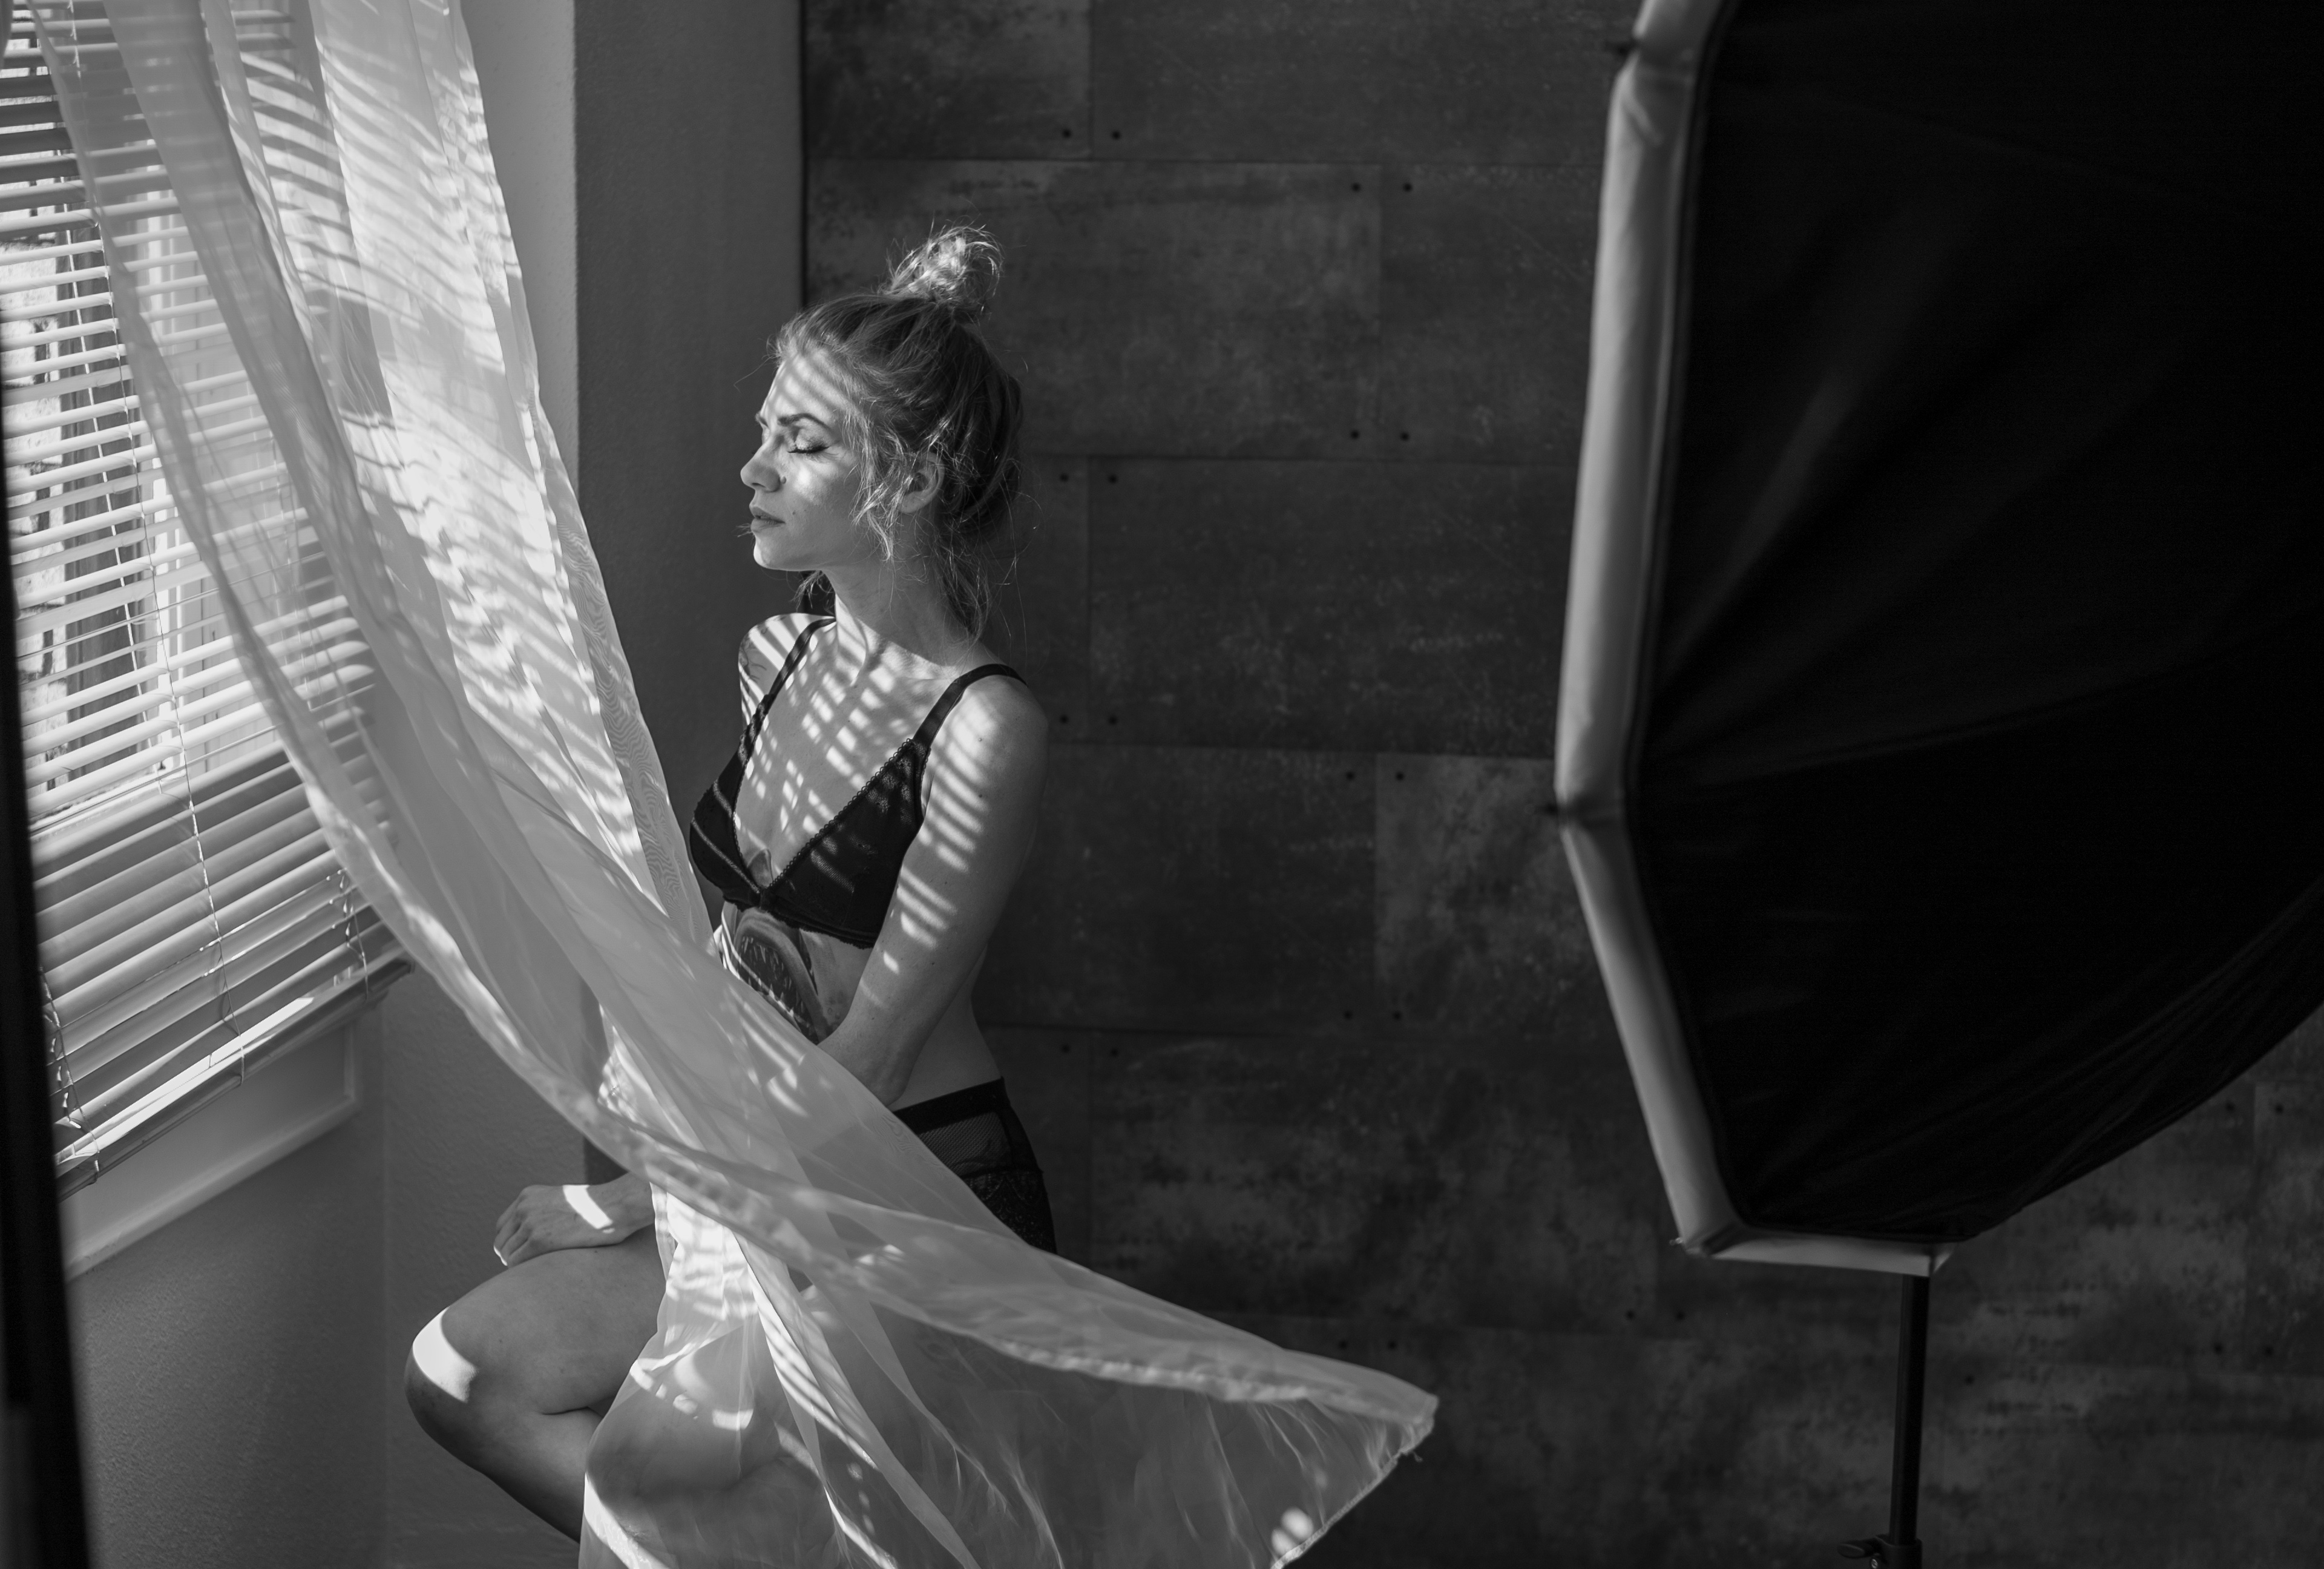 Shaping Images Blending Natural And Artificial Light